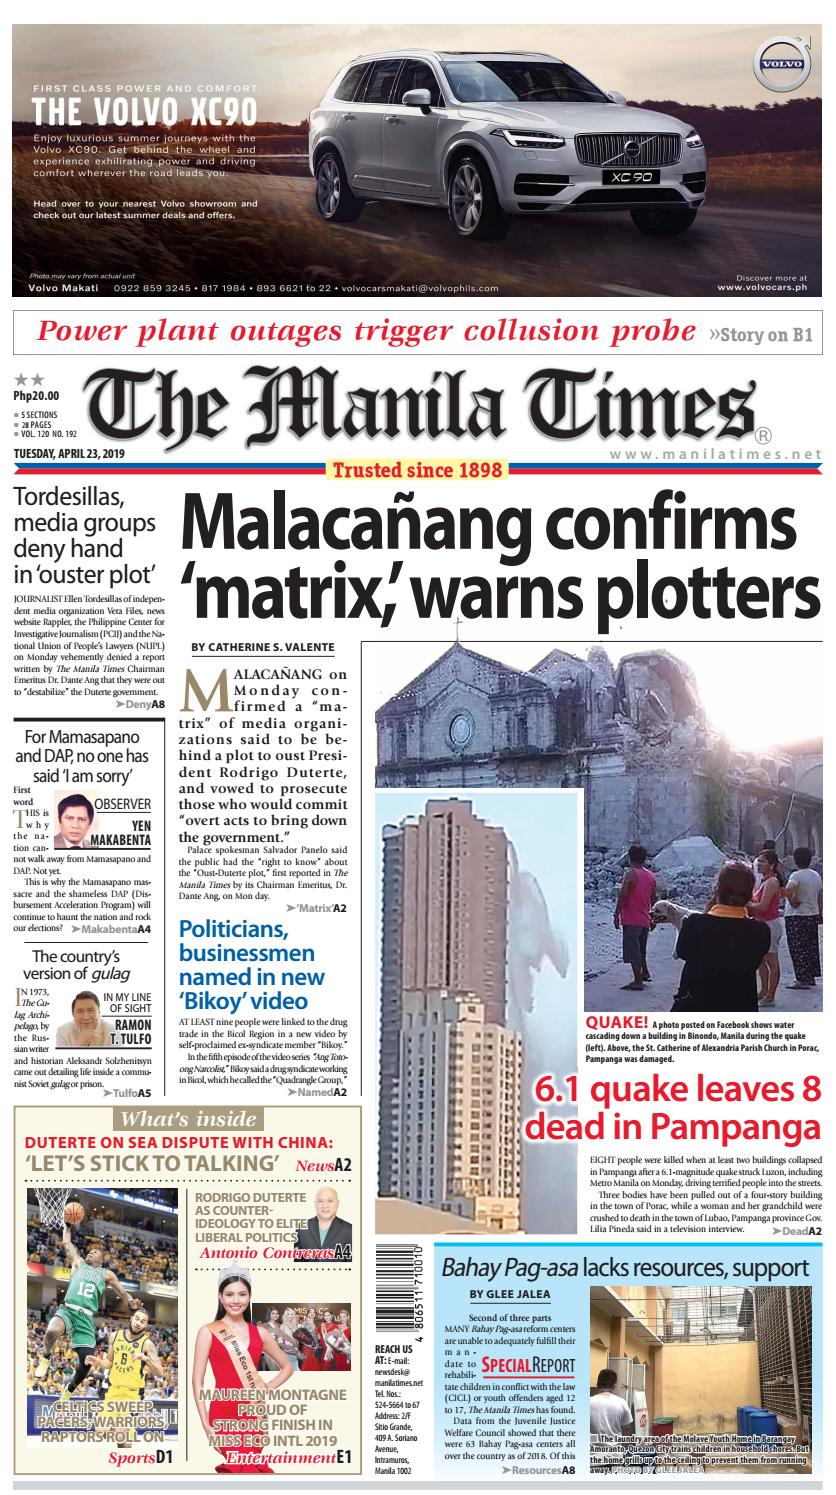 THE MANILA TIMES | APRIL 23, 2019 by The Manila Times - issuu